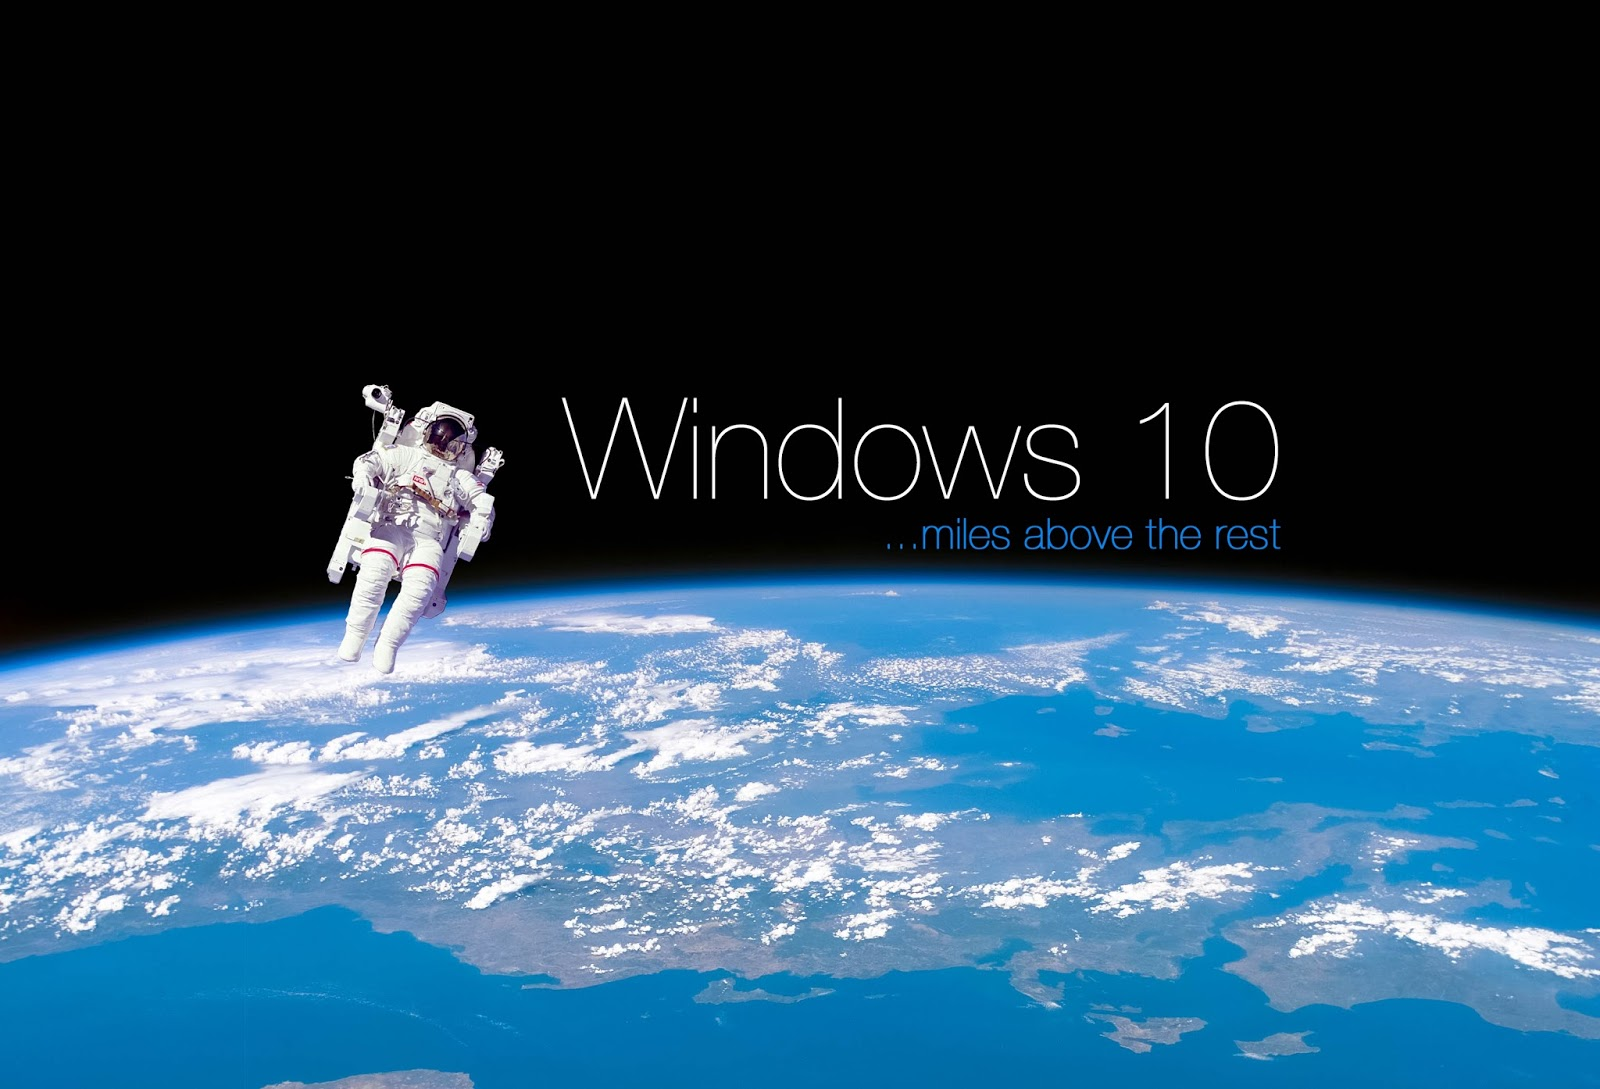 Descarga Hd Calidad De Windows 10 Fondos De Libre Descargar Windows